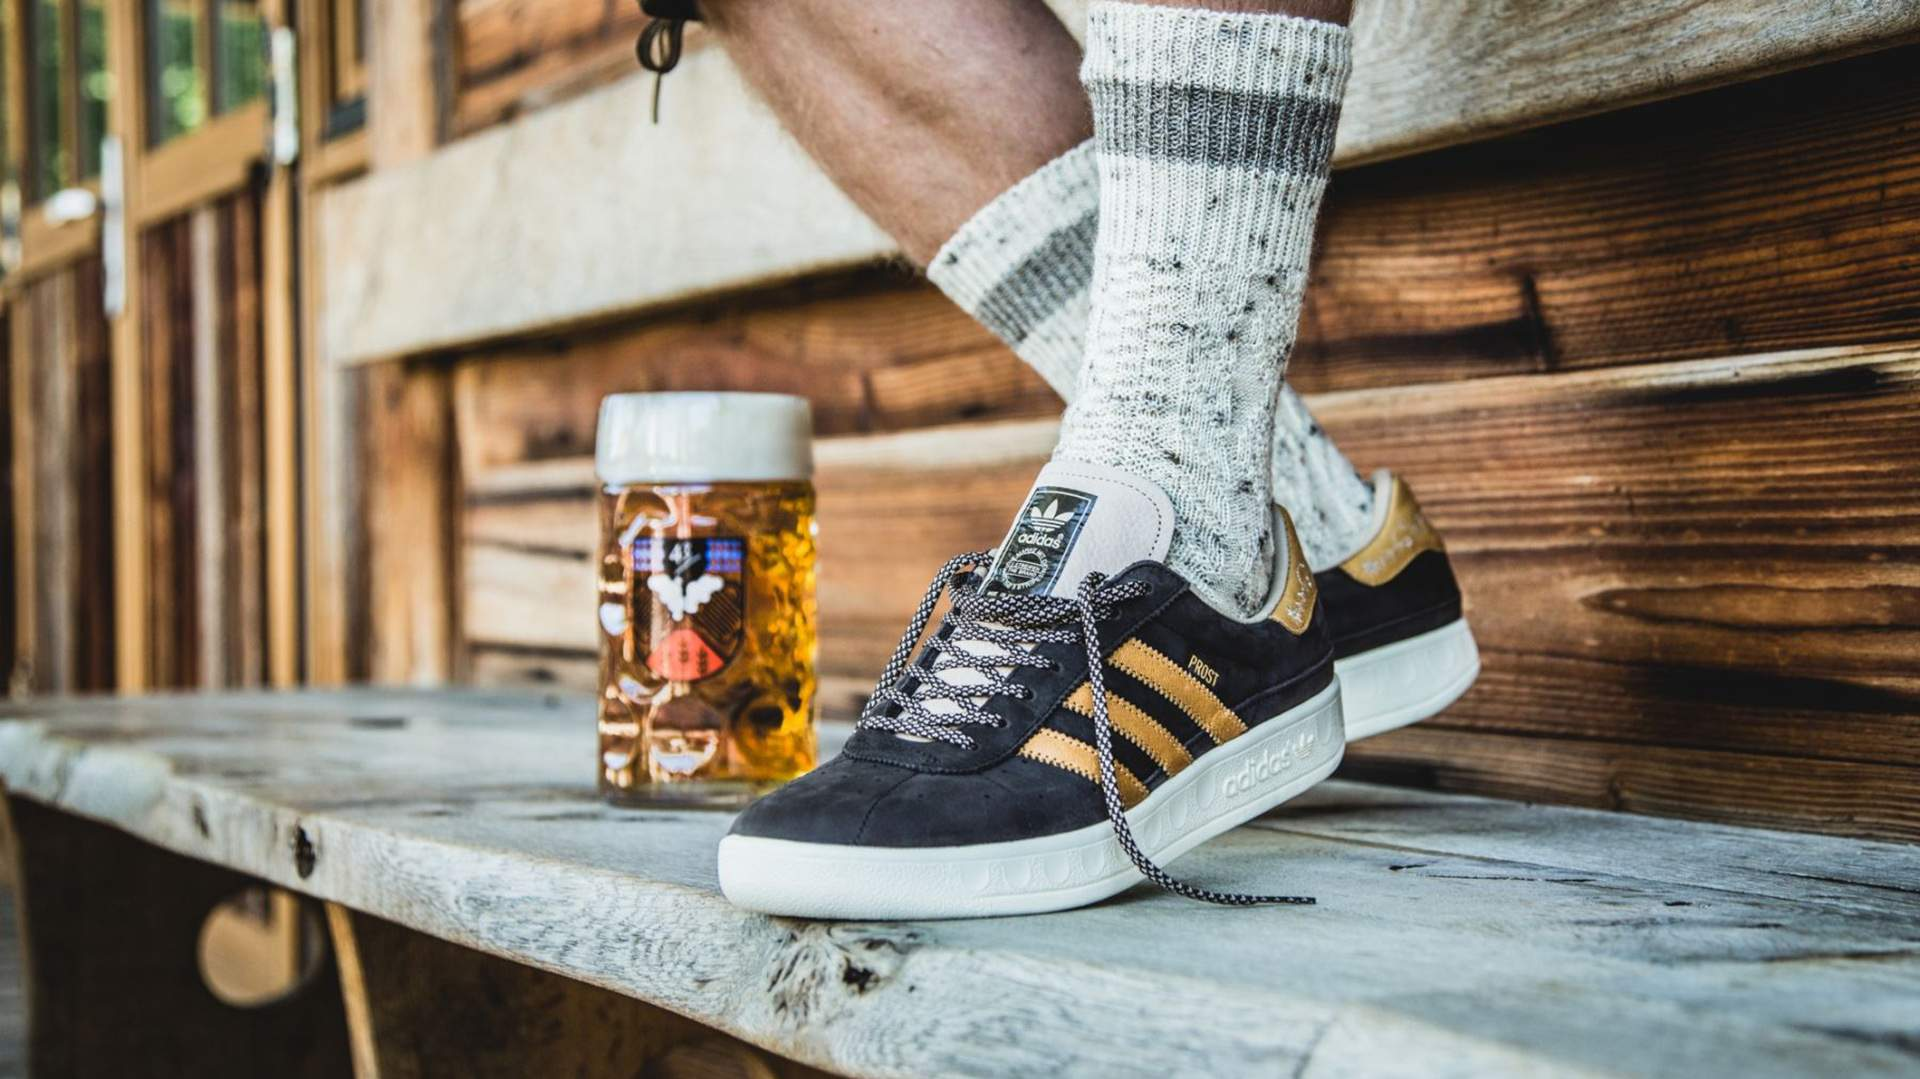 Adidas Has Created Beer-Proof Shoes for Oktoberfest